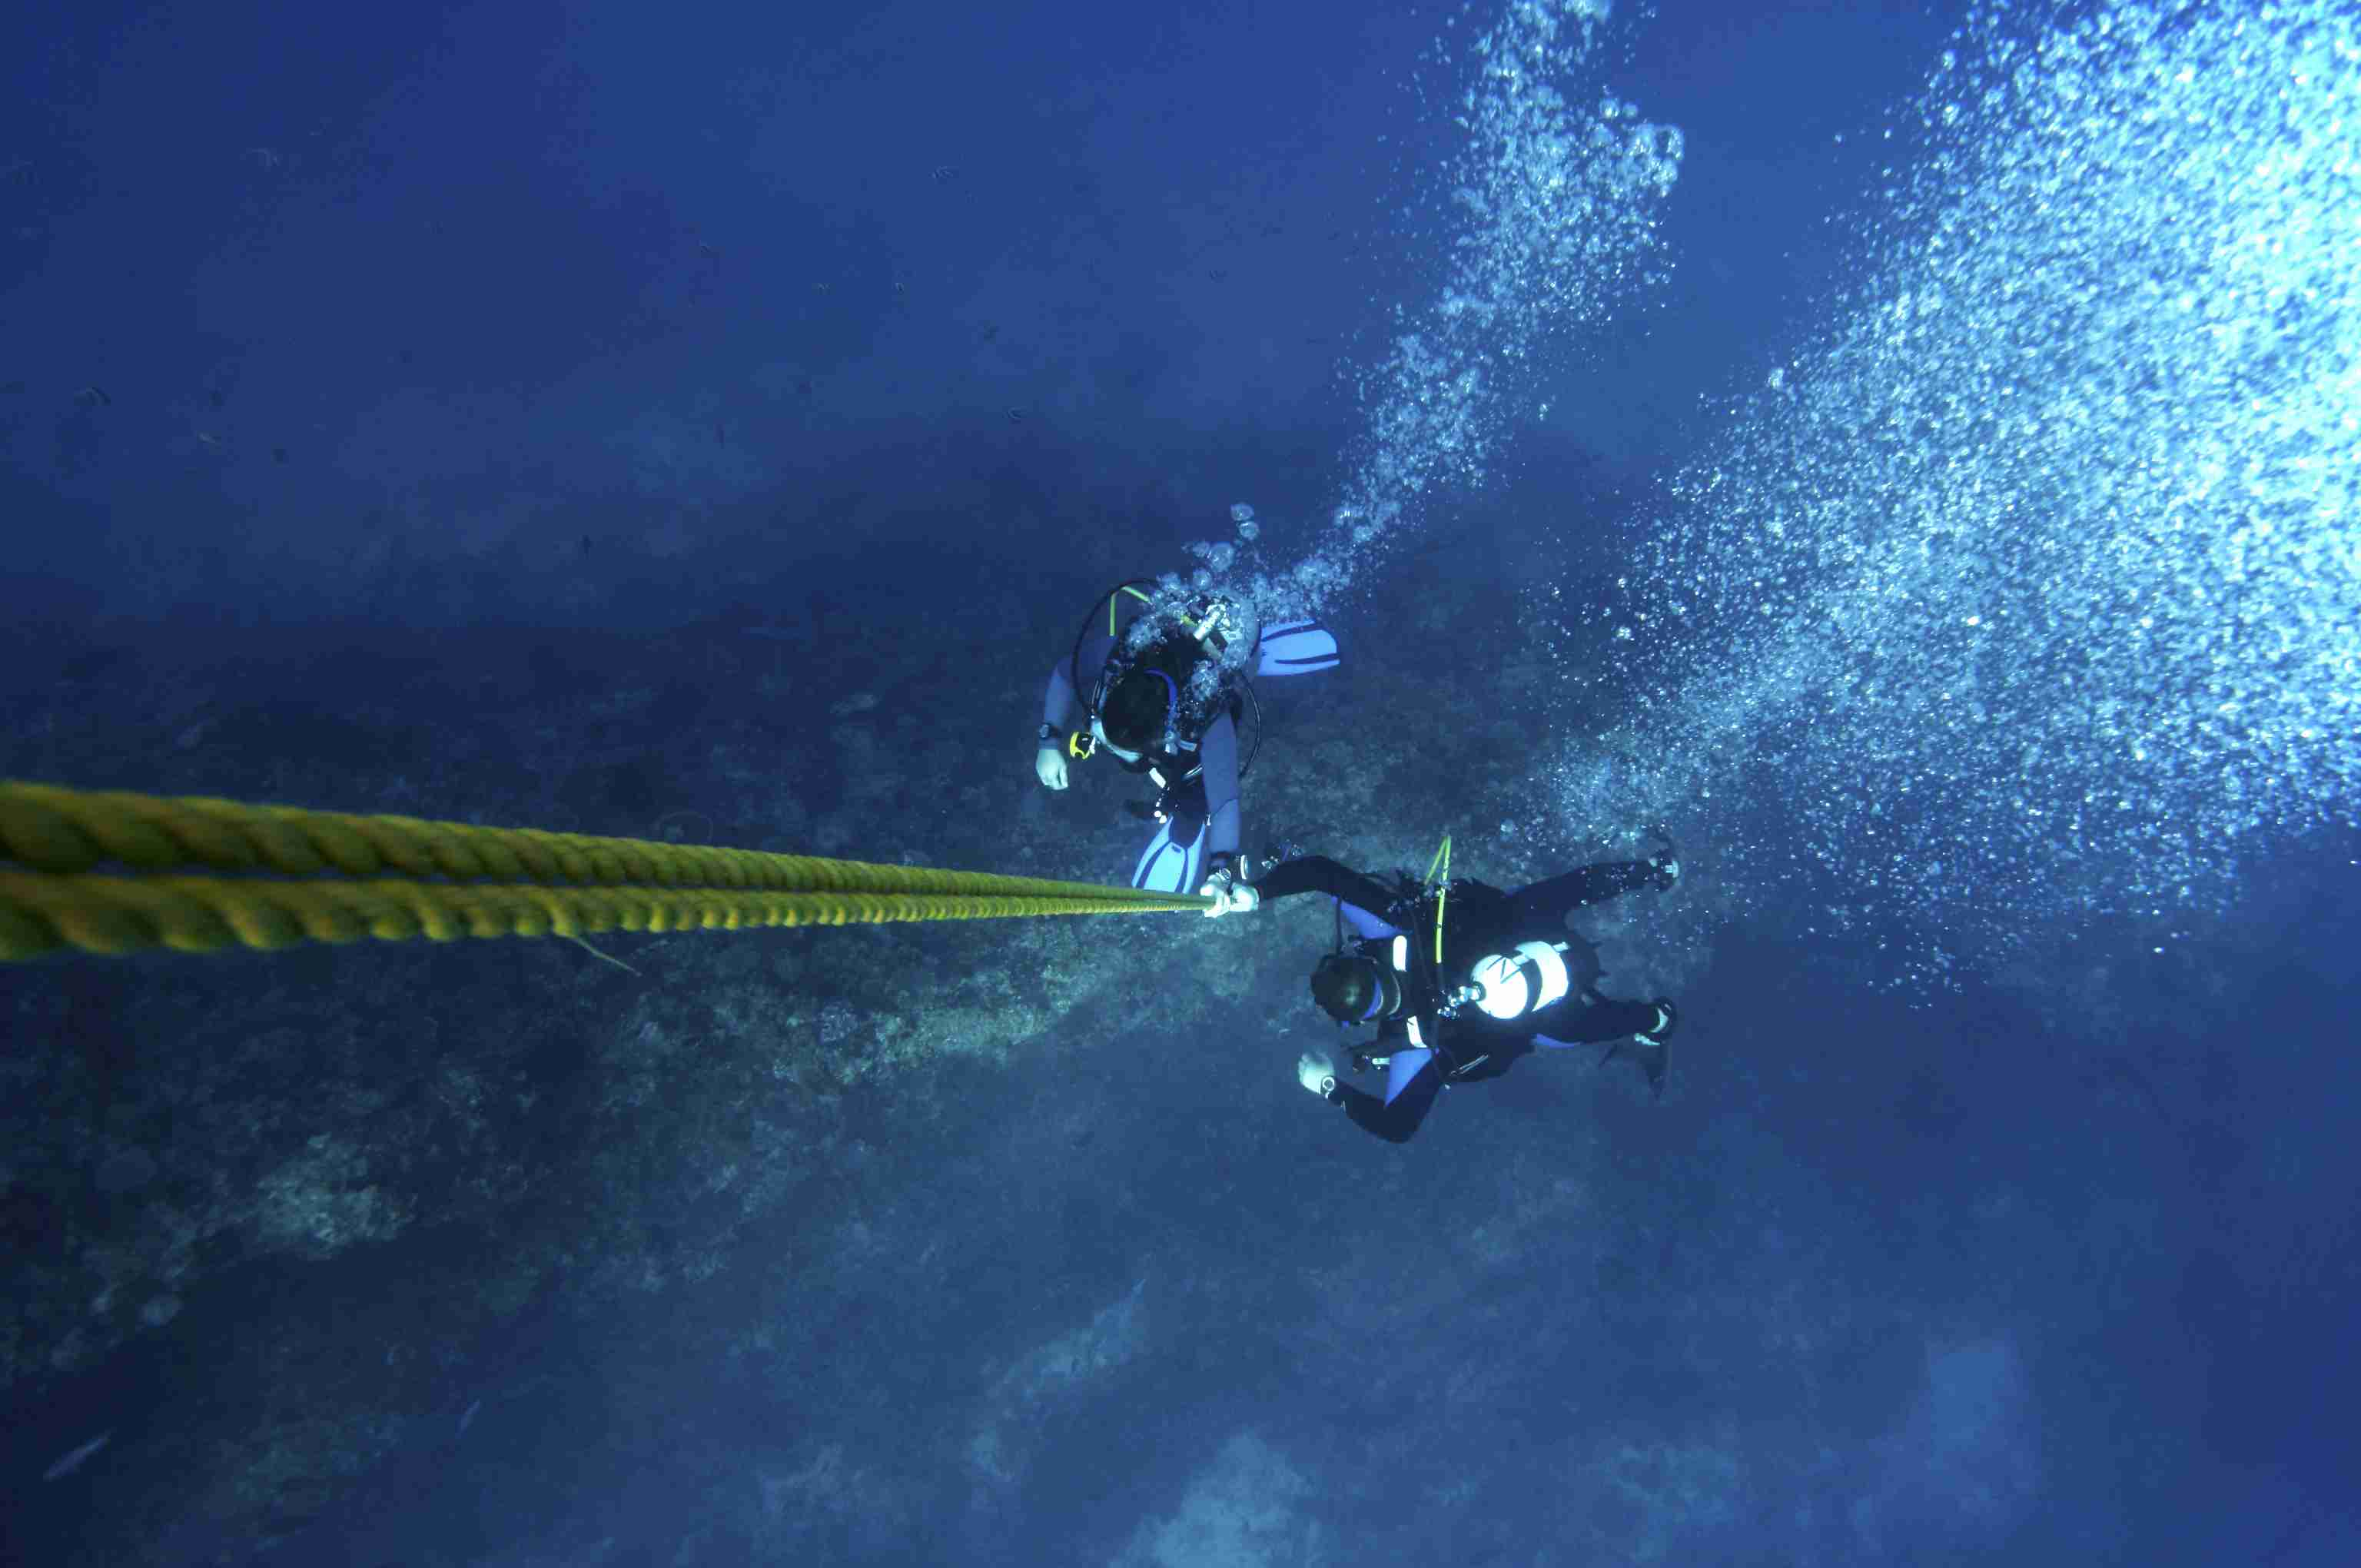 See a photo of scuba divers ascending during a controlled emergency swimming ascent